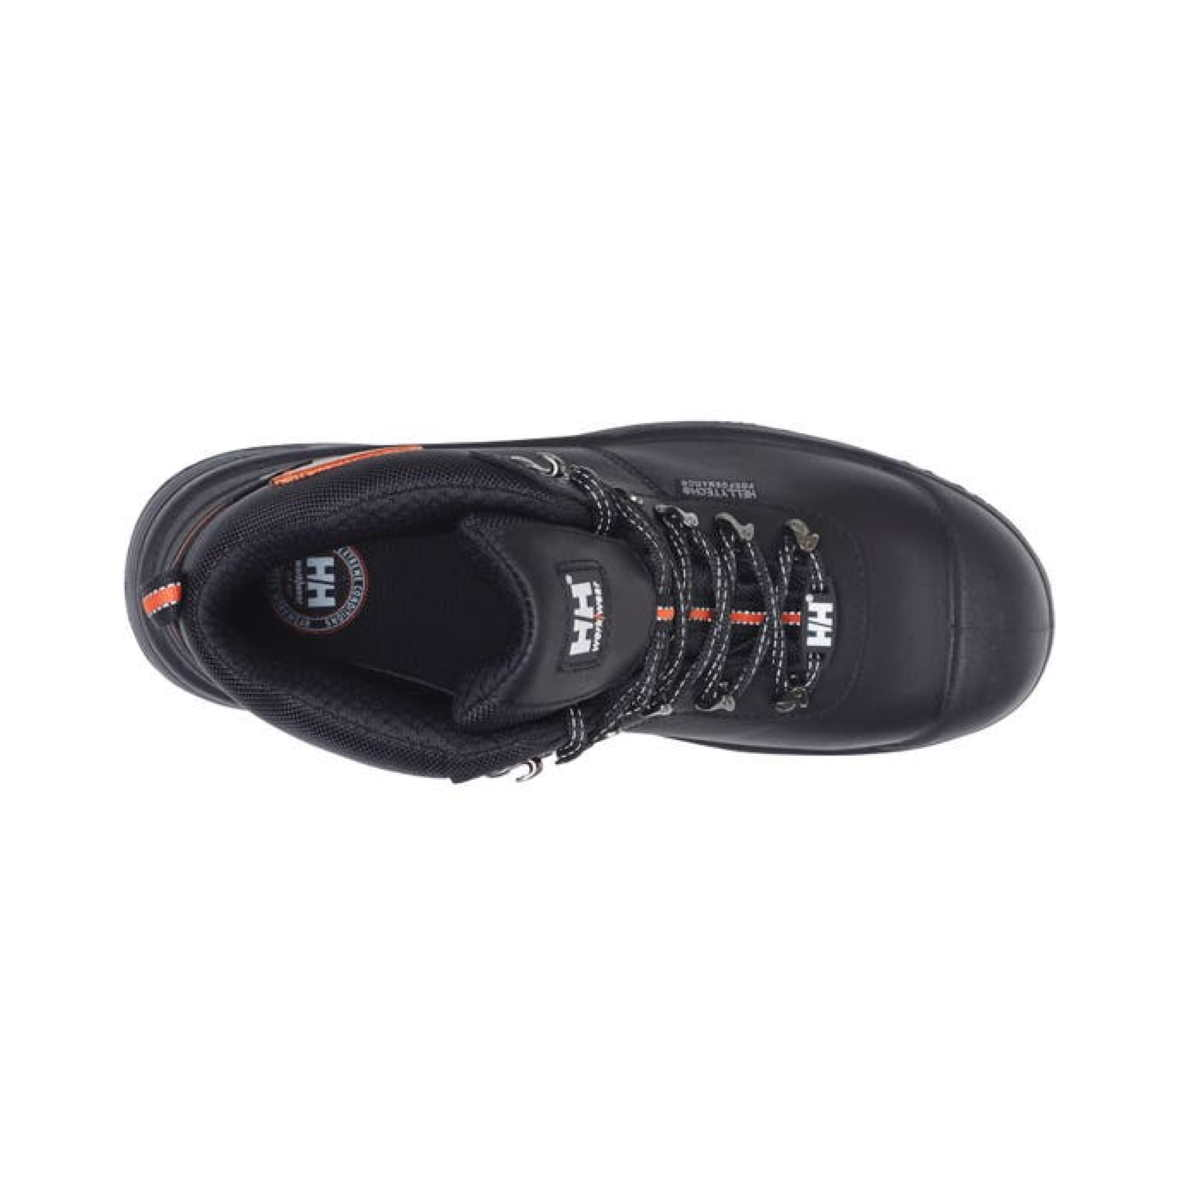 SF8250 Helly Hansen Chelsea Waterproof Safety Boot Top